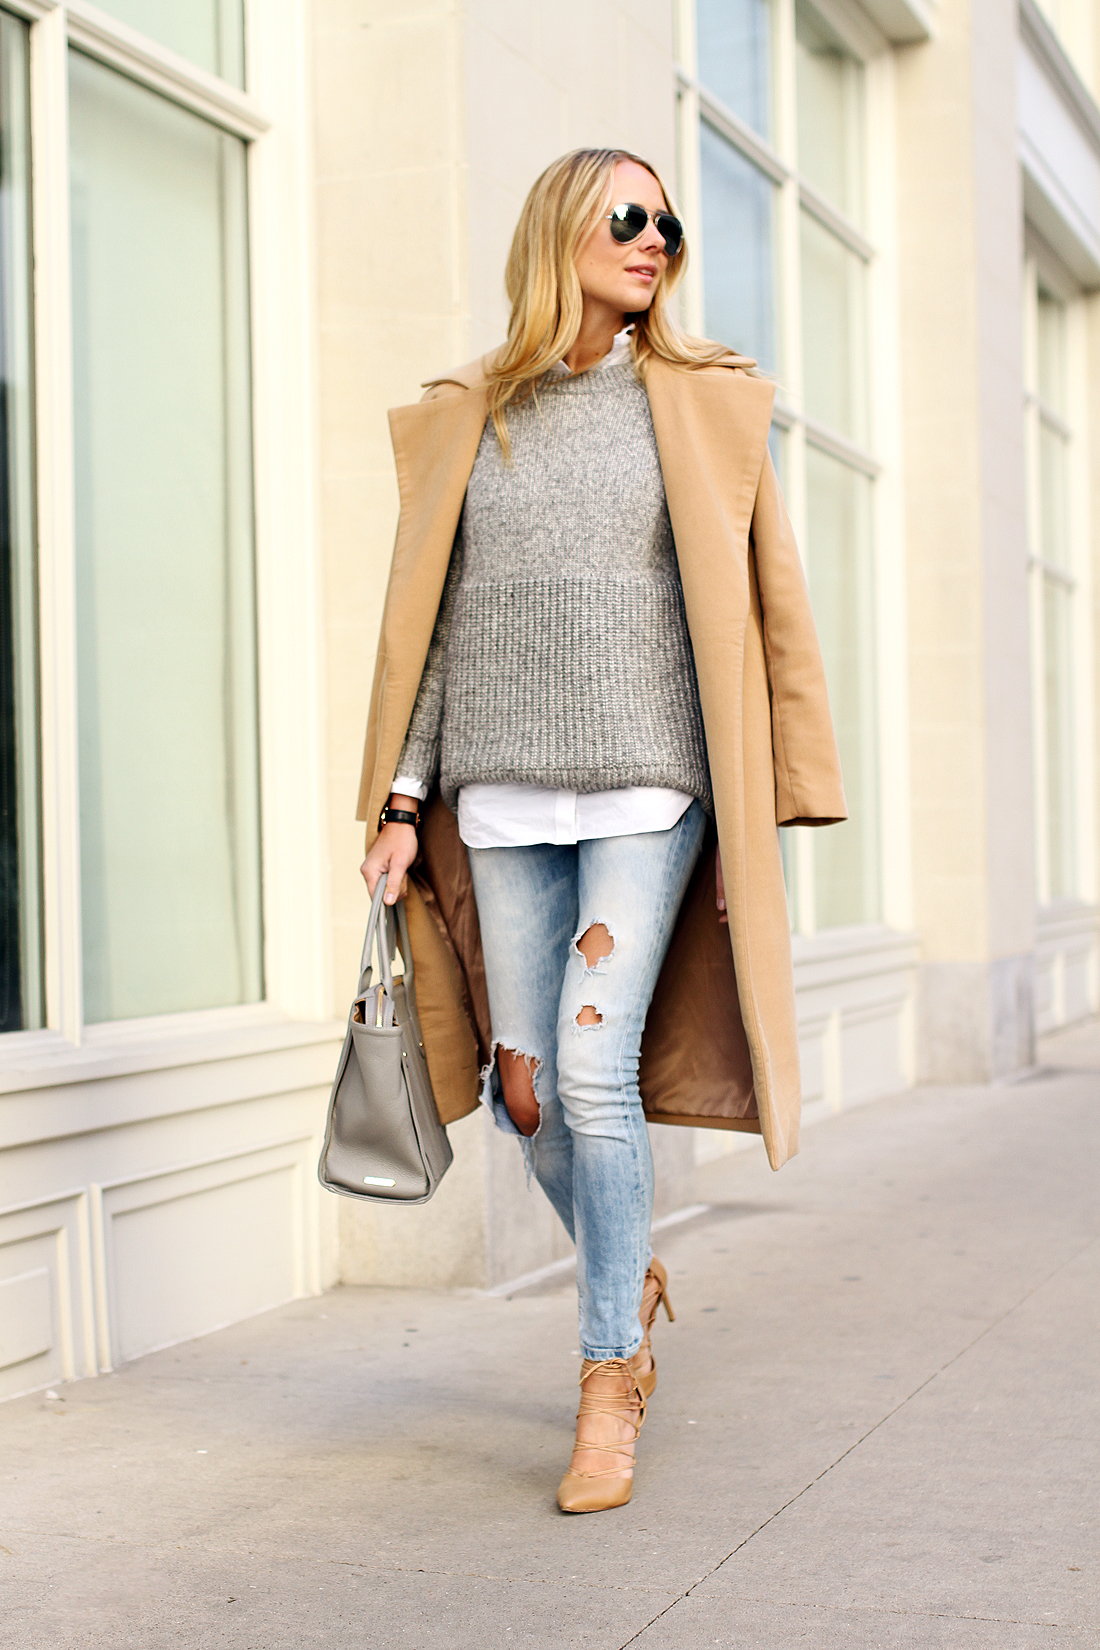 fashion-jackson-camel-coat-grey-sweater-ripped-skinny-jeans-nude-pumps